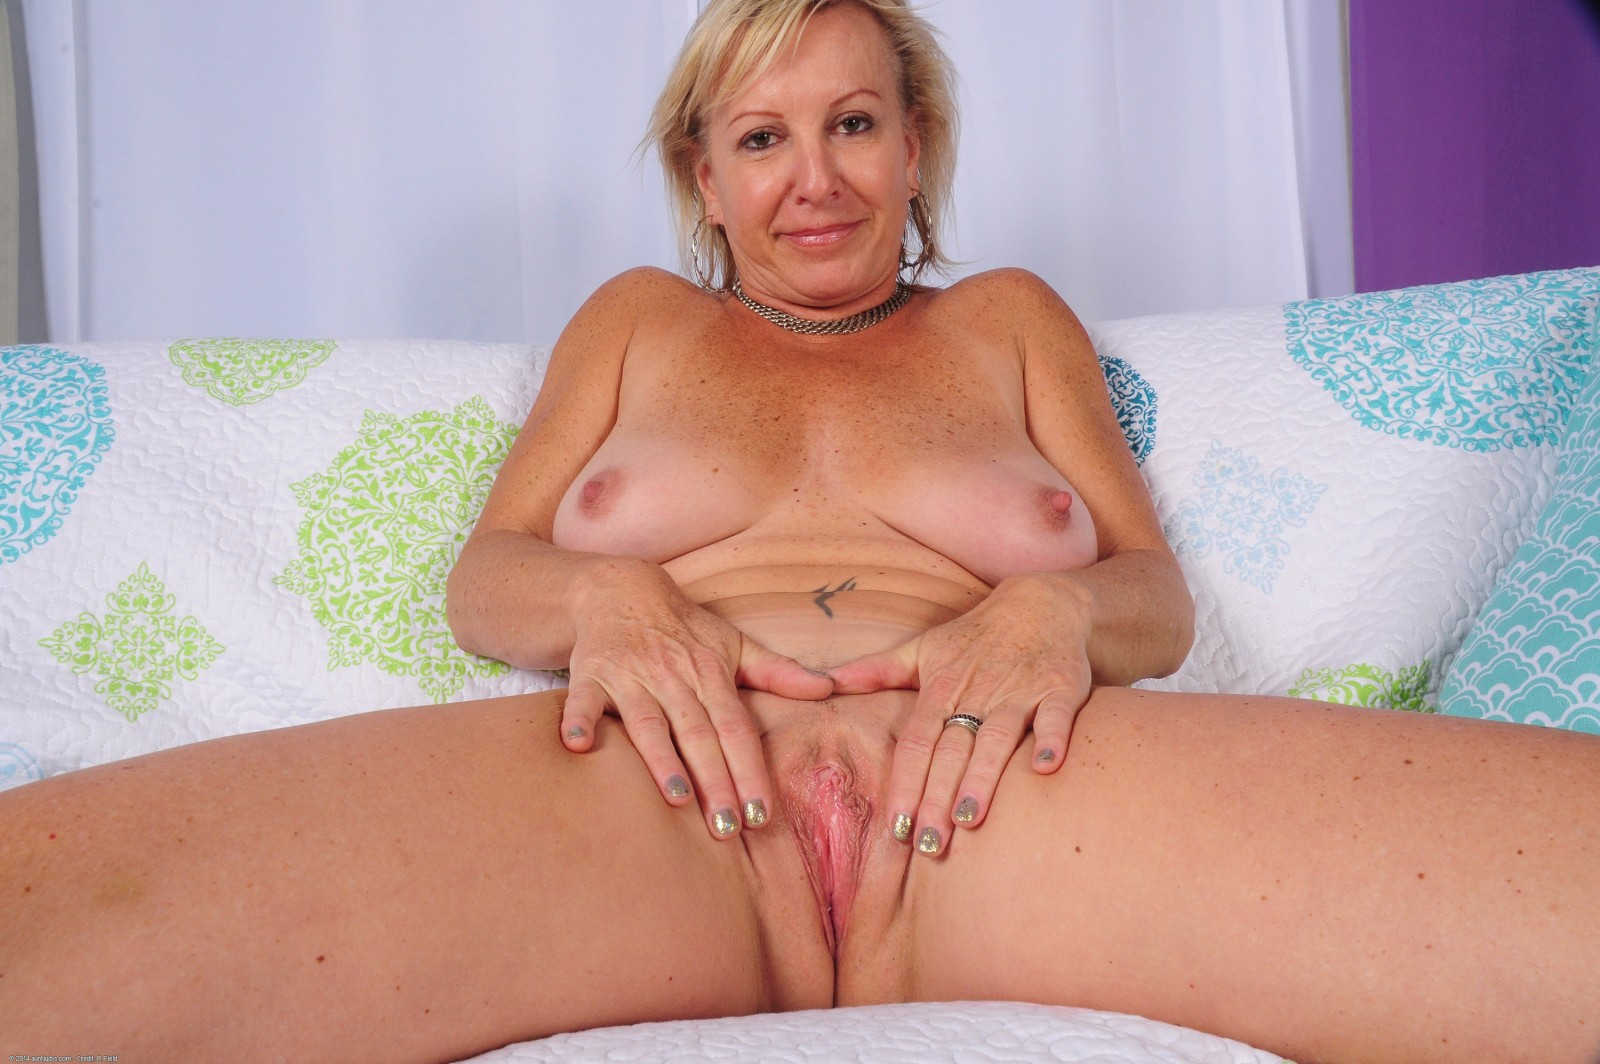 Mature milf whore opinion you